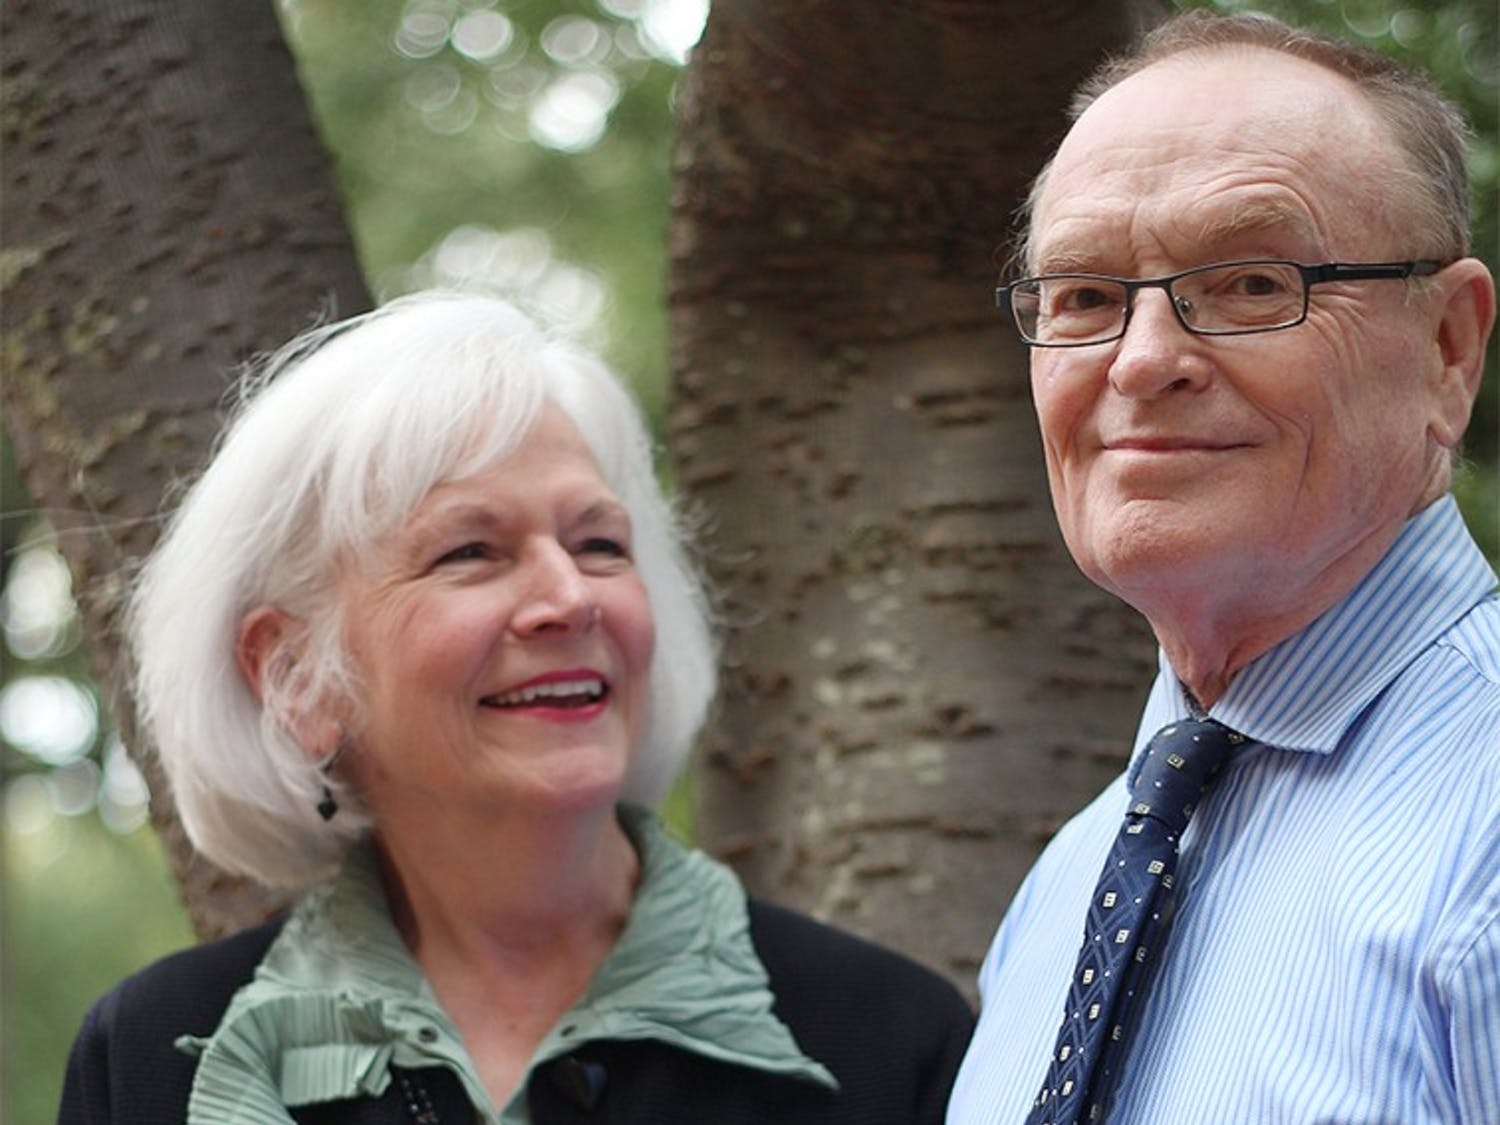 Shirley Ort and Fred Clark are the founders and directors of the Carolina Covenant financial aid program. Ort is in charge of the university's financial aid department and Clark is a professor who has been teaching here for 47 years (teaches classes on Brazilian studies).The Carolina Covenant program was founded ten years ago and is a need-based program that covers all school-related costs for the students it serves, including the cost of living. It has improved UNC's diversity and has served as a model for other financial aid programs around the country (however, Shirley pointed out that ours has been the most successful because many other schools who have tried it have dropped the program because it is so expensive).